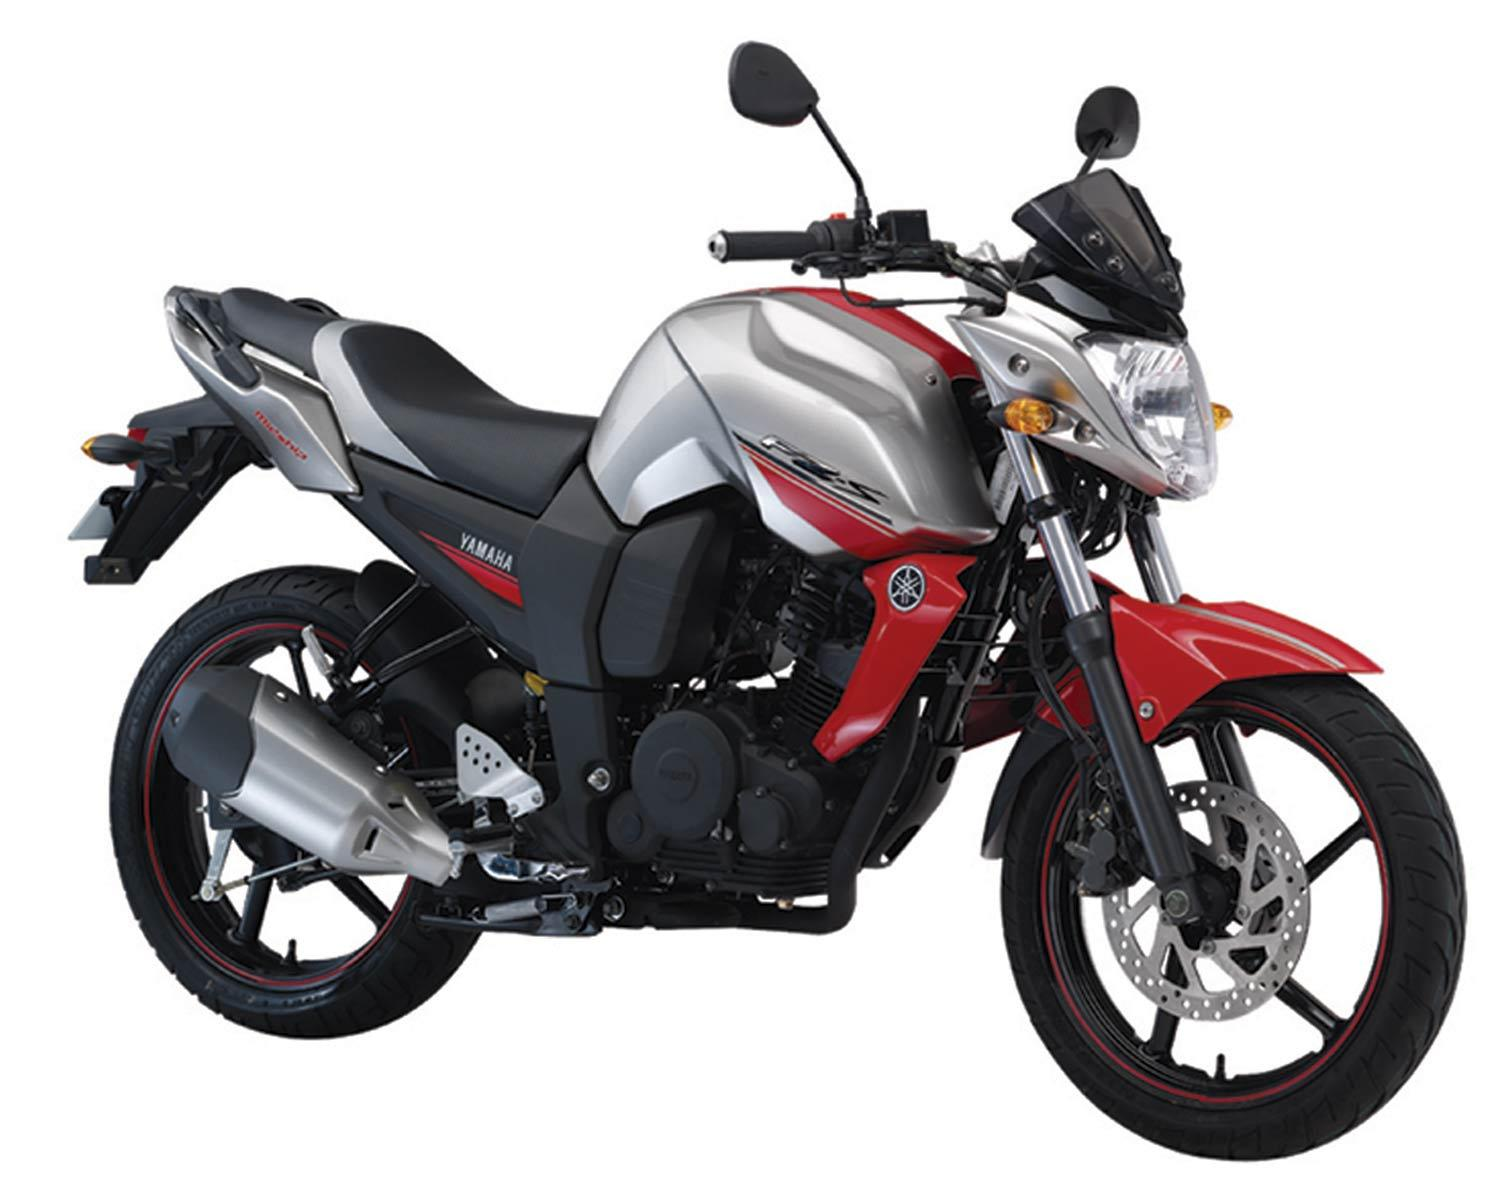 Yamaha Fz S Fi Version 2 0 Price In India